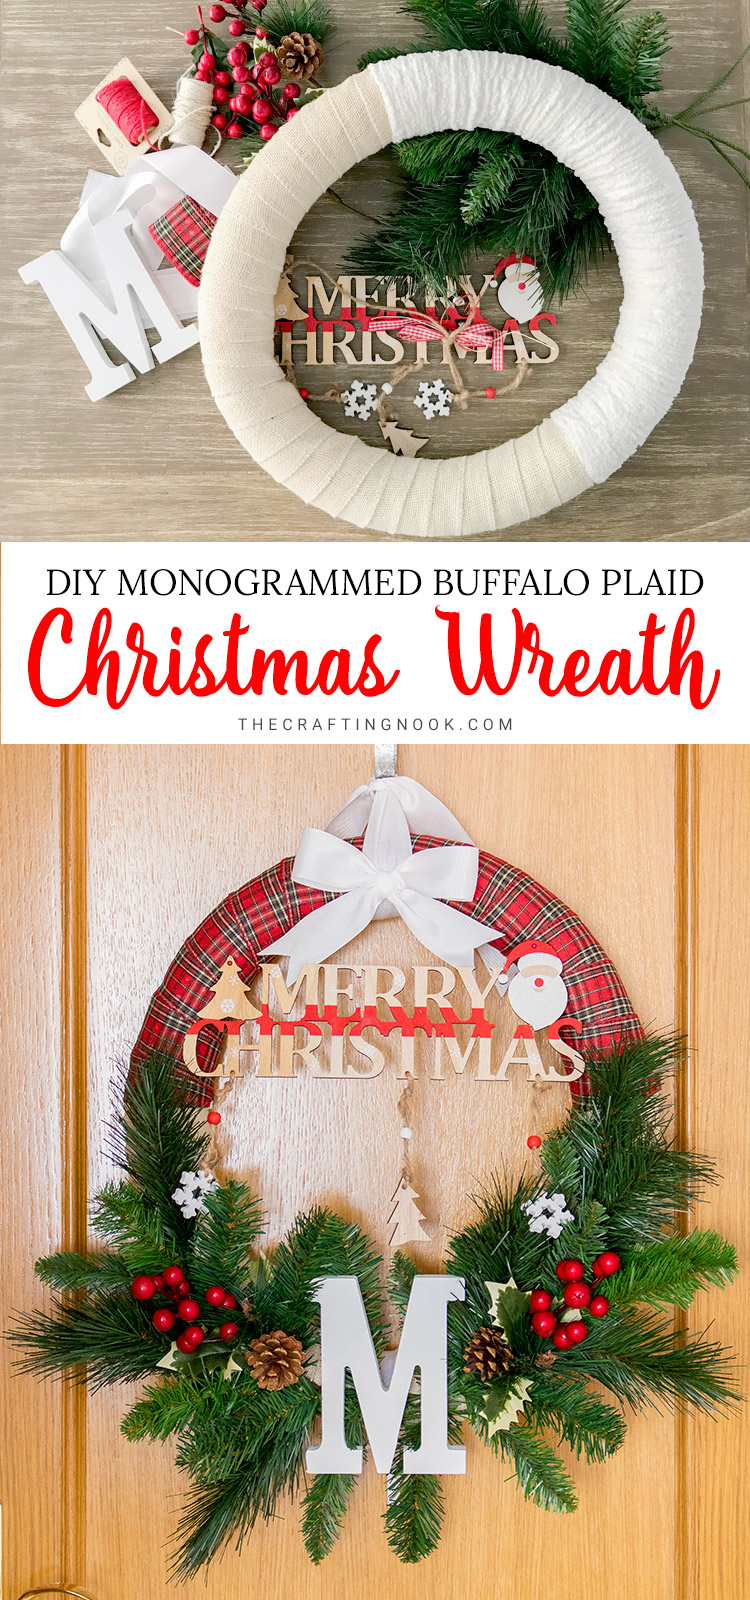 Buffalo Check Christmas Wreath.Diy Monogrammed Buffalo Plaid Christmas Wreath The